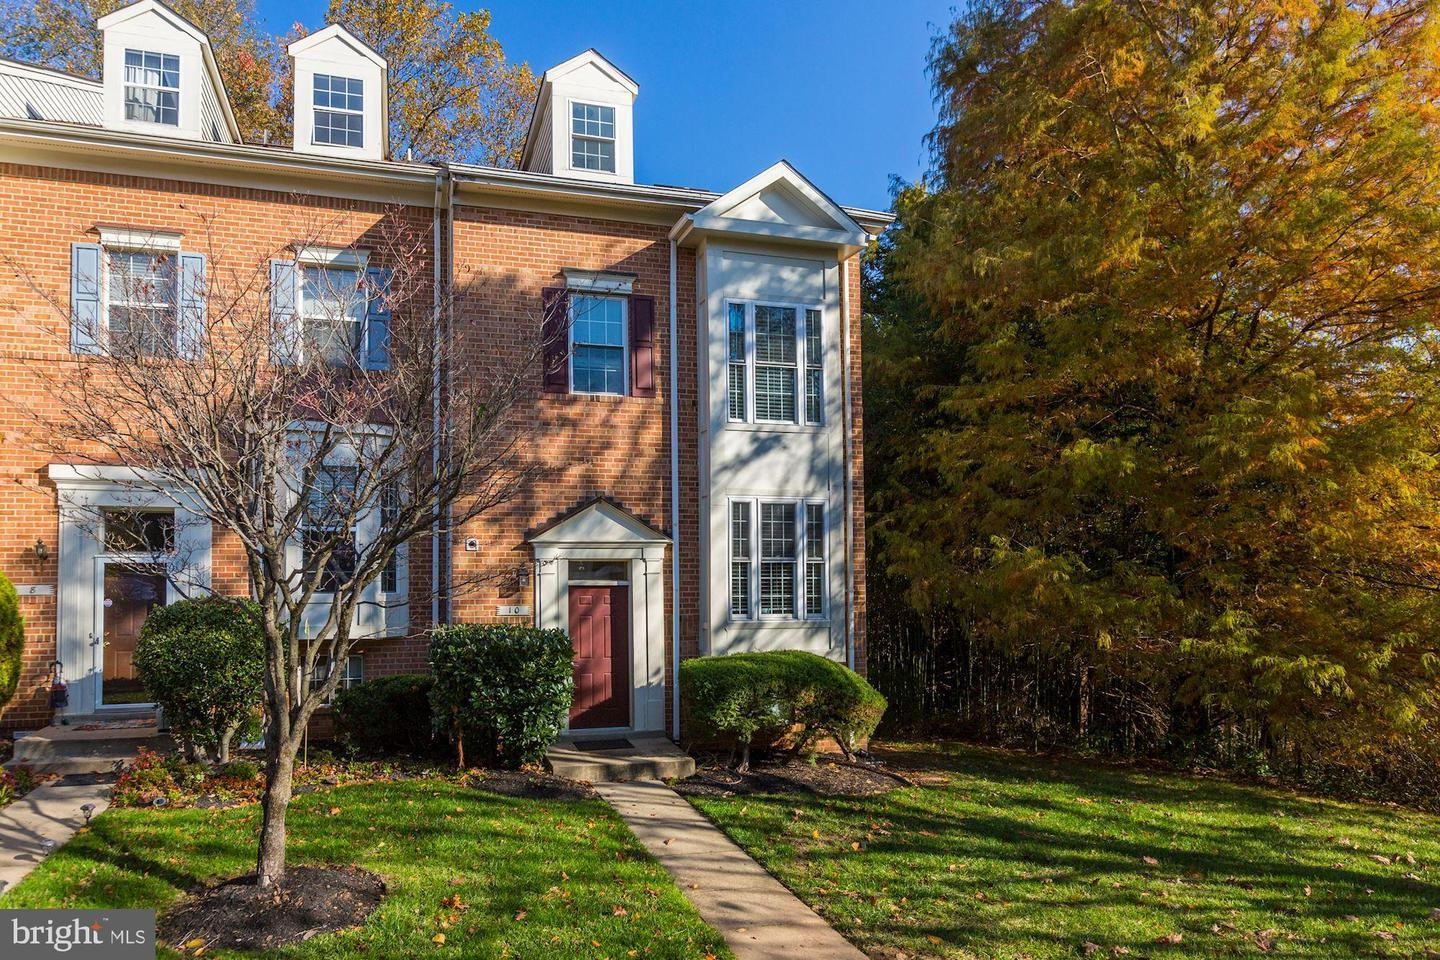 10 SILVER MOON Dr, Silver Spring, MD, 20904